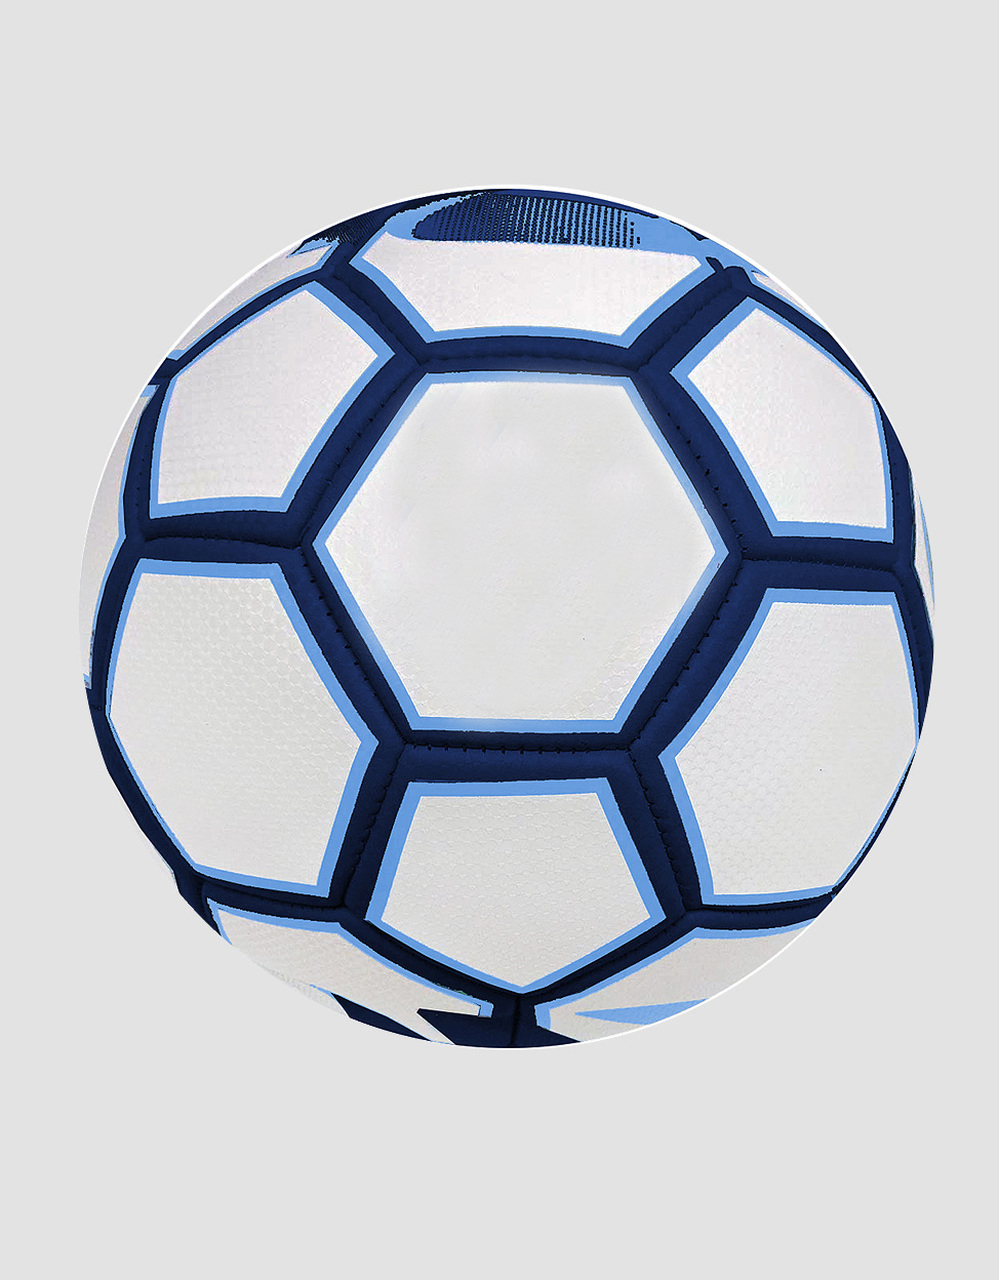 Soccer ball - size 5 and mini for regular and promo use